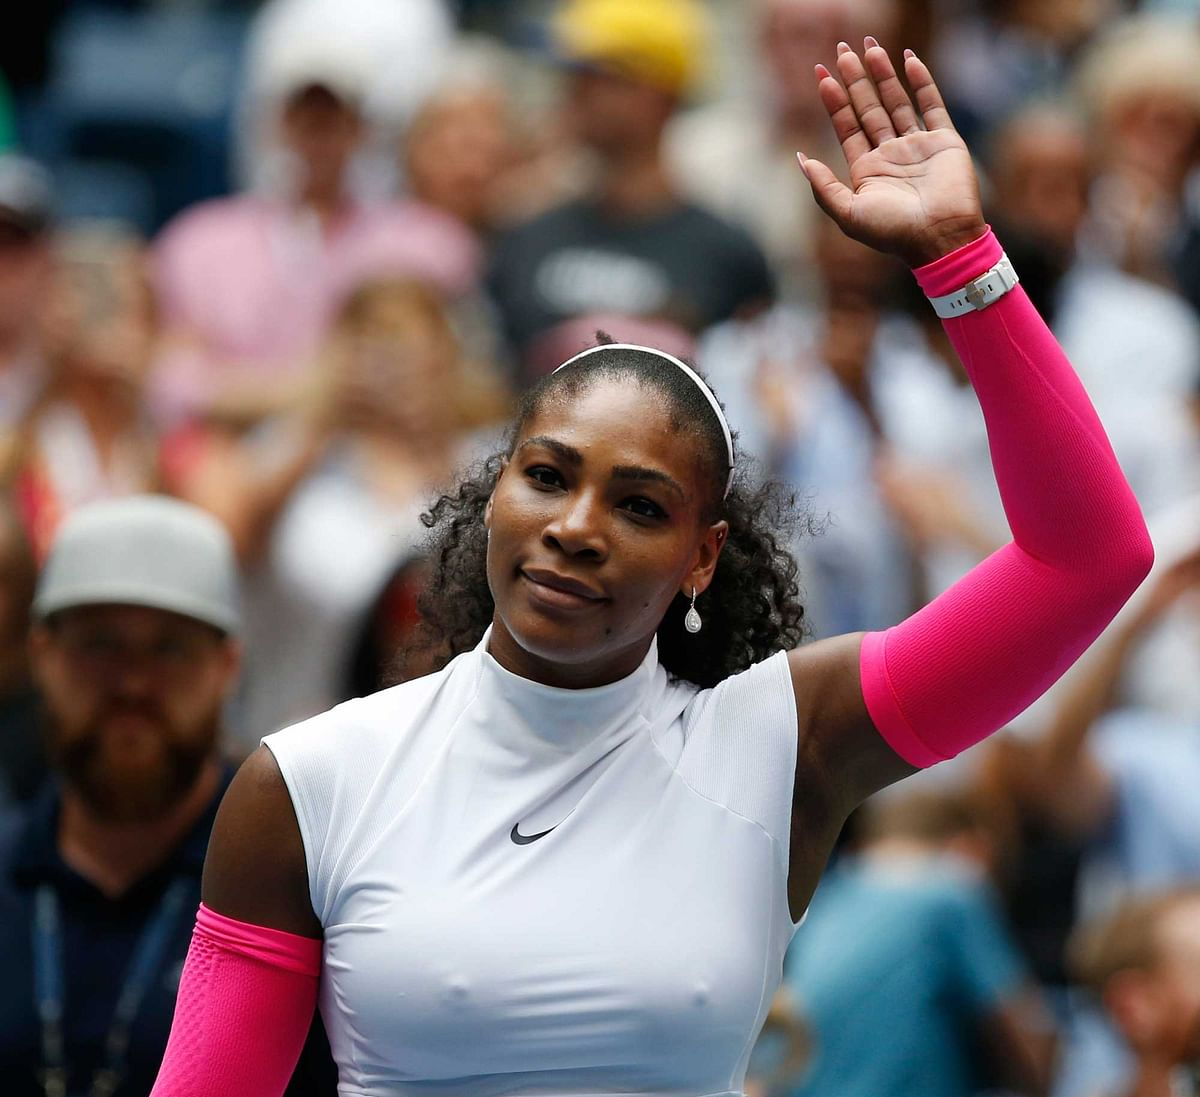 Serena Williams waves to fans after defeating Johanna Larsson, of Sweden, during the third round of the U.S. Open. (Photo: AP)